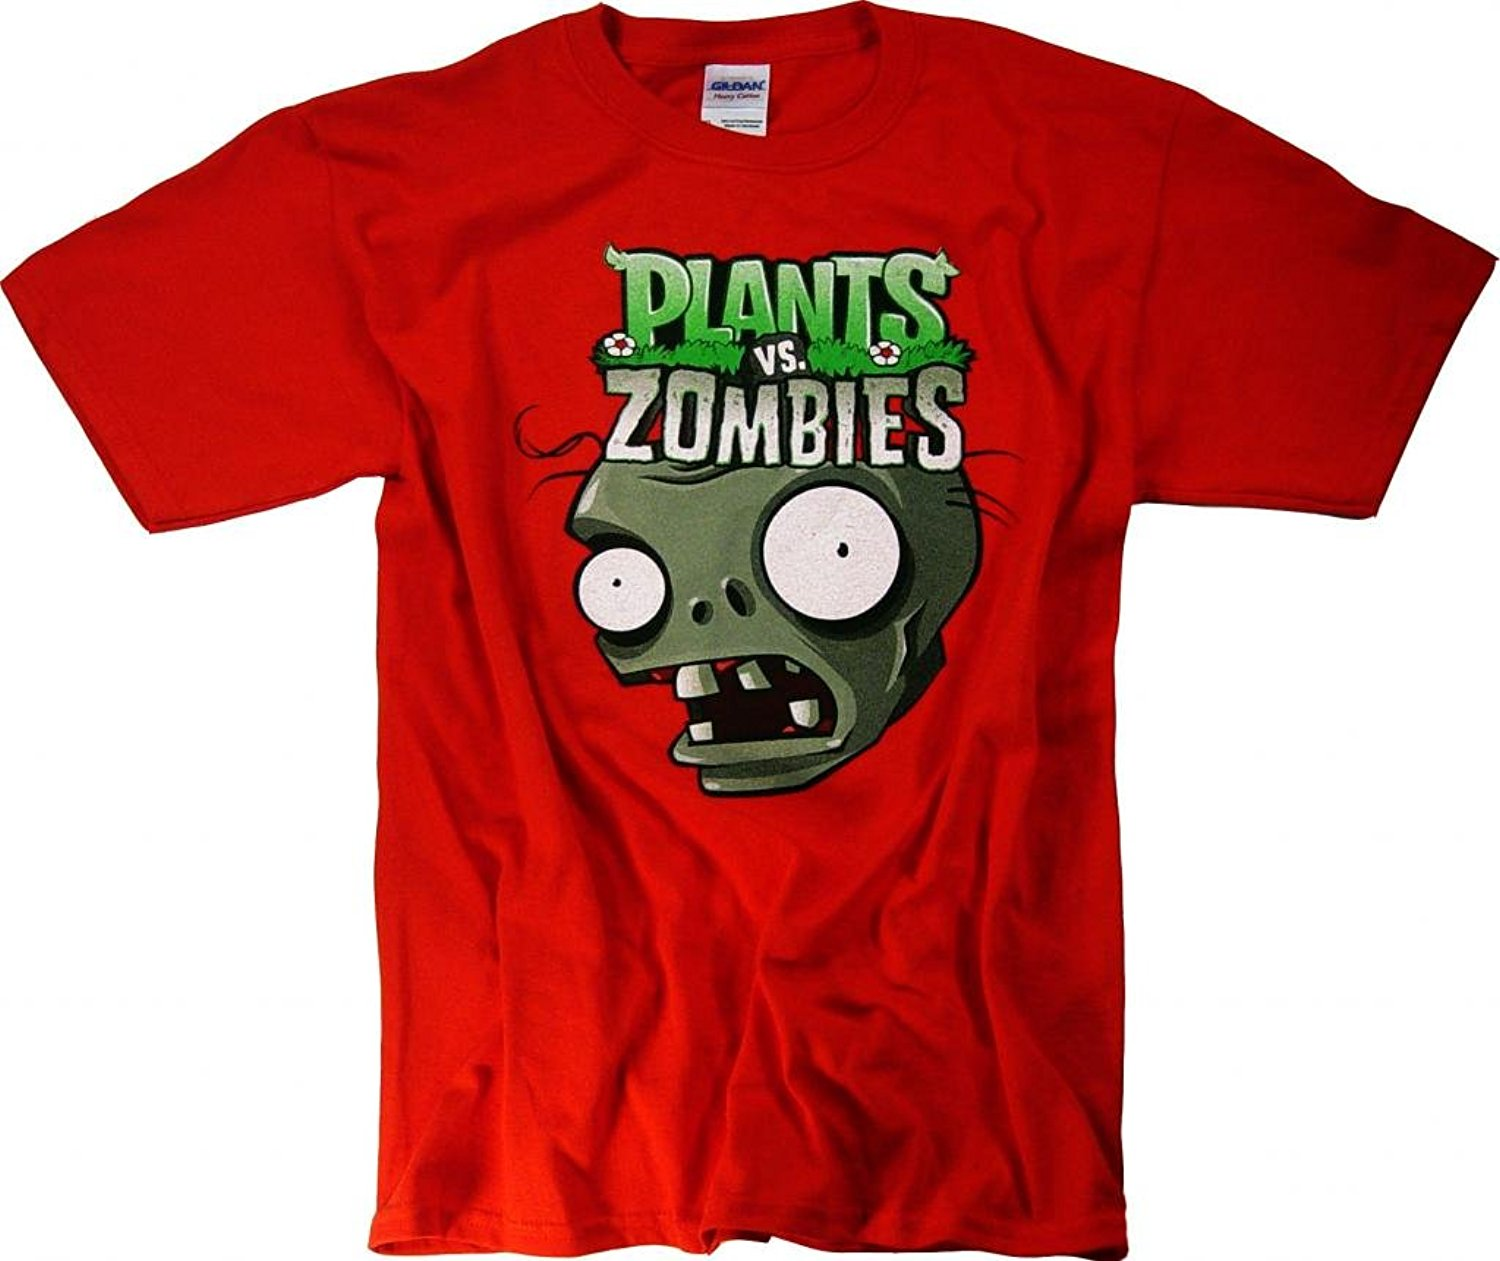 Plants vs Zombies 2 T-Shirt Youth Plush Toys Merchandise Clothing Apparel(China (Mainland))